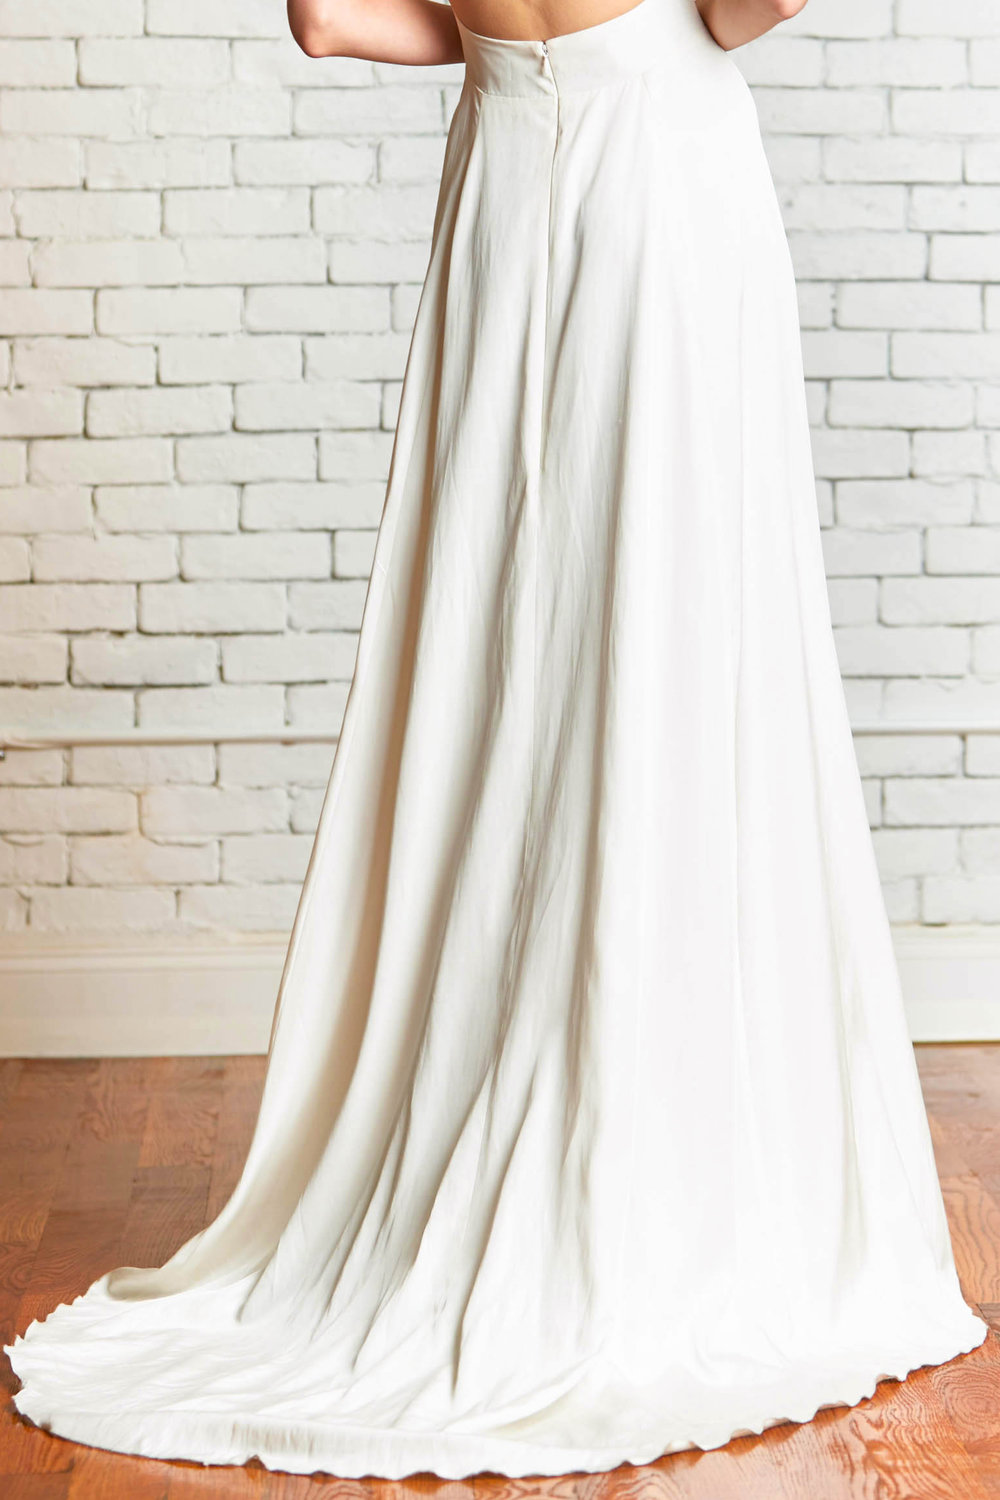 Lincoln_2back-A-line_Skirt_Dramatic_Modern_Wedding_Skirts.jpg